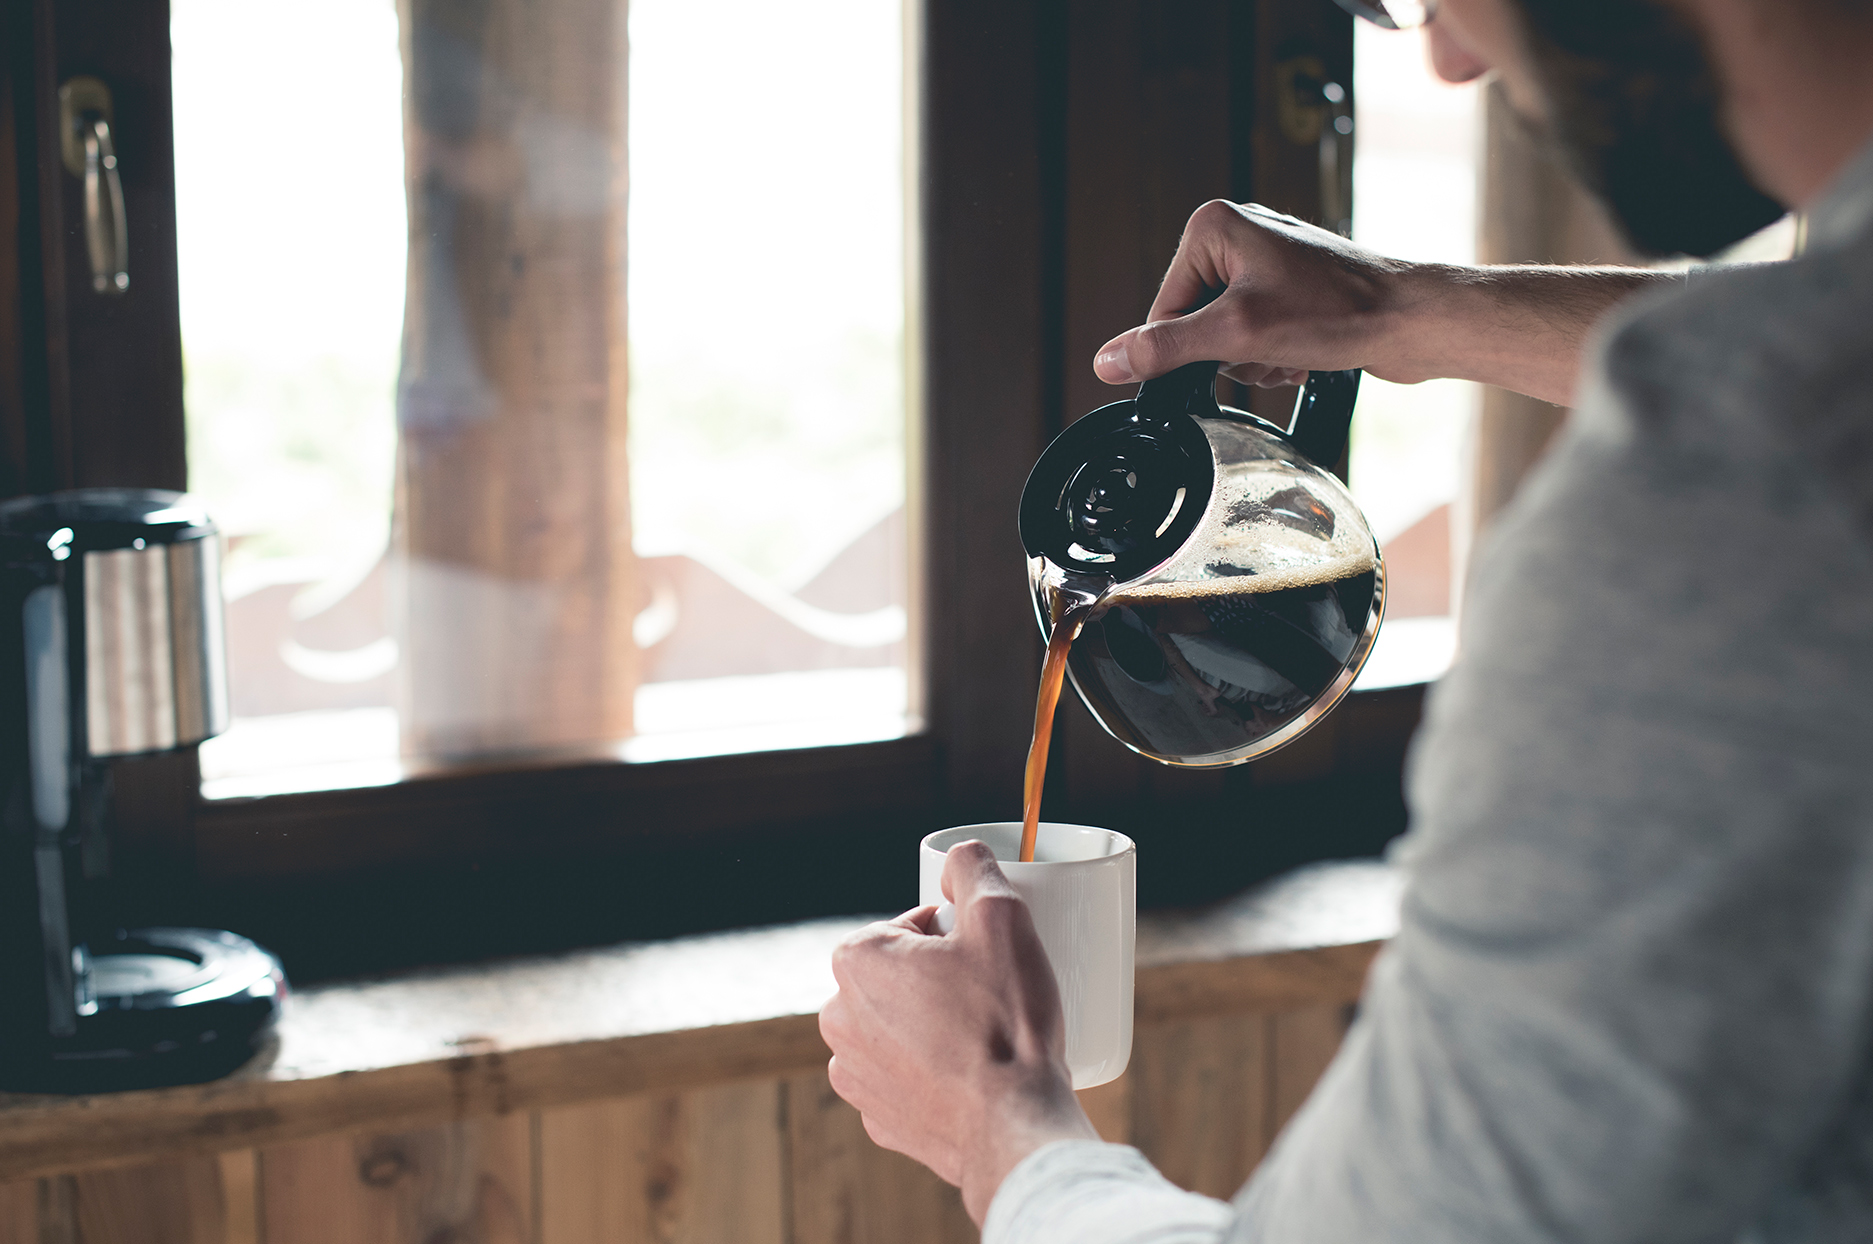 Person pouring coffee in kitchen in front of window